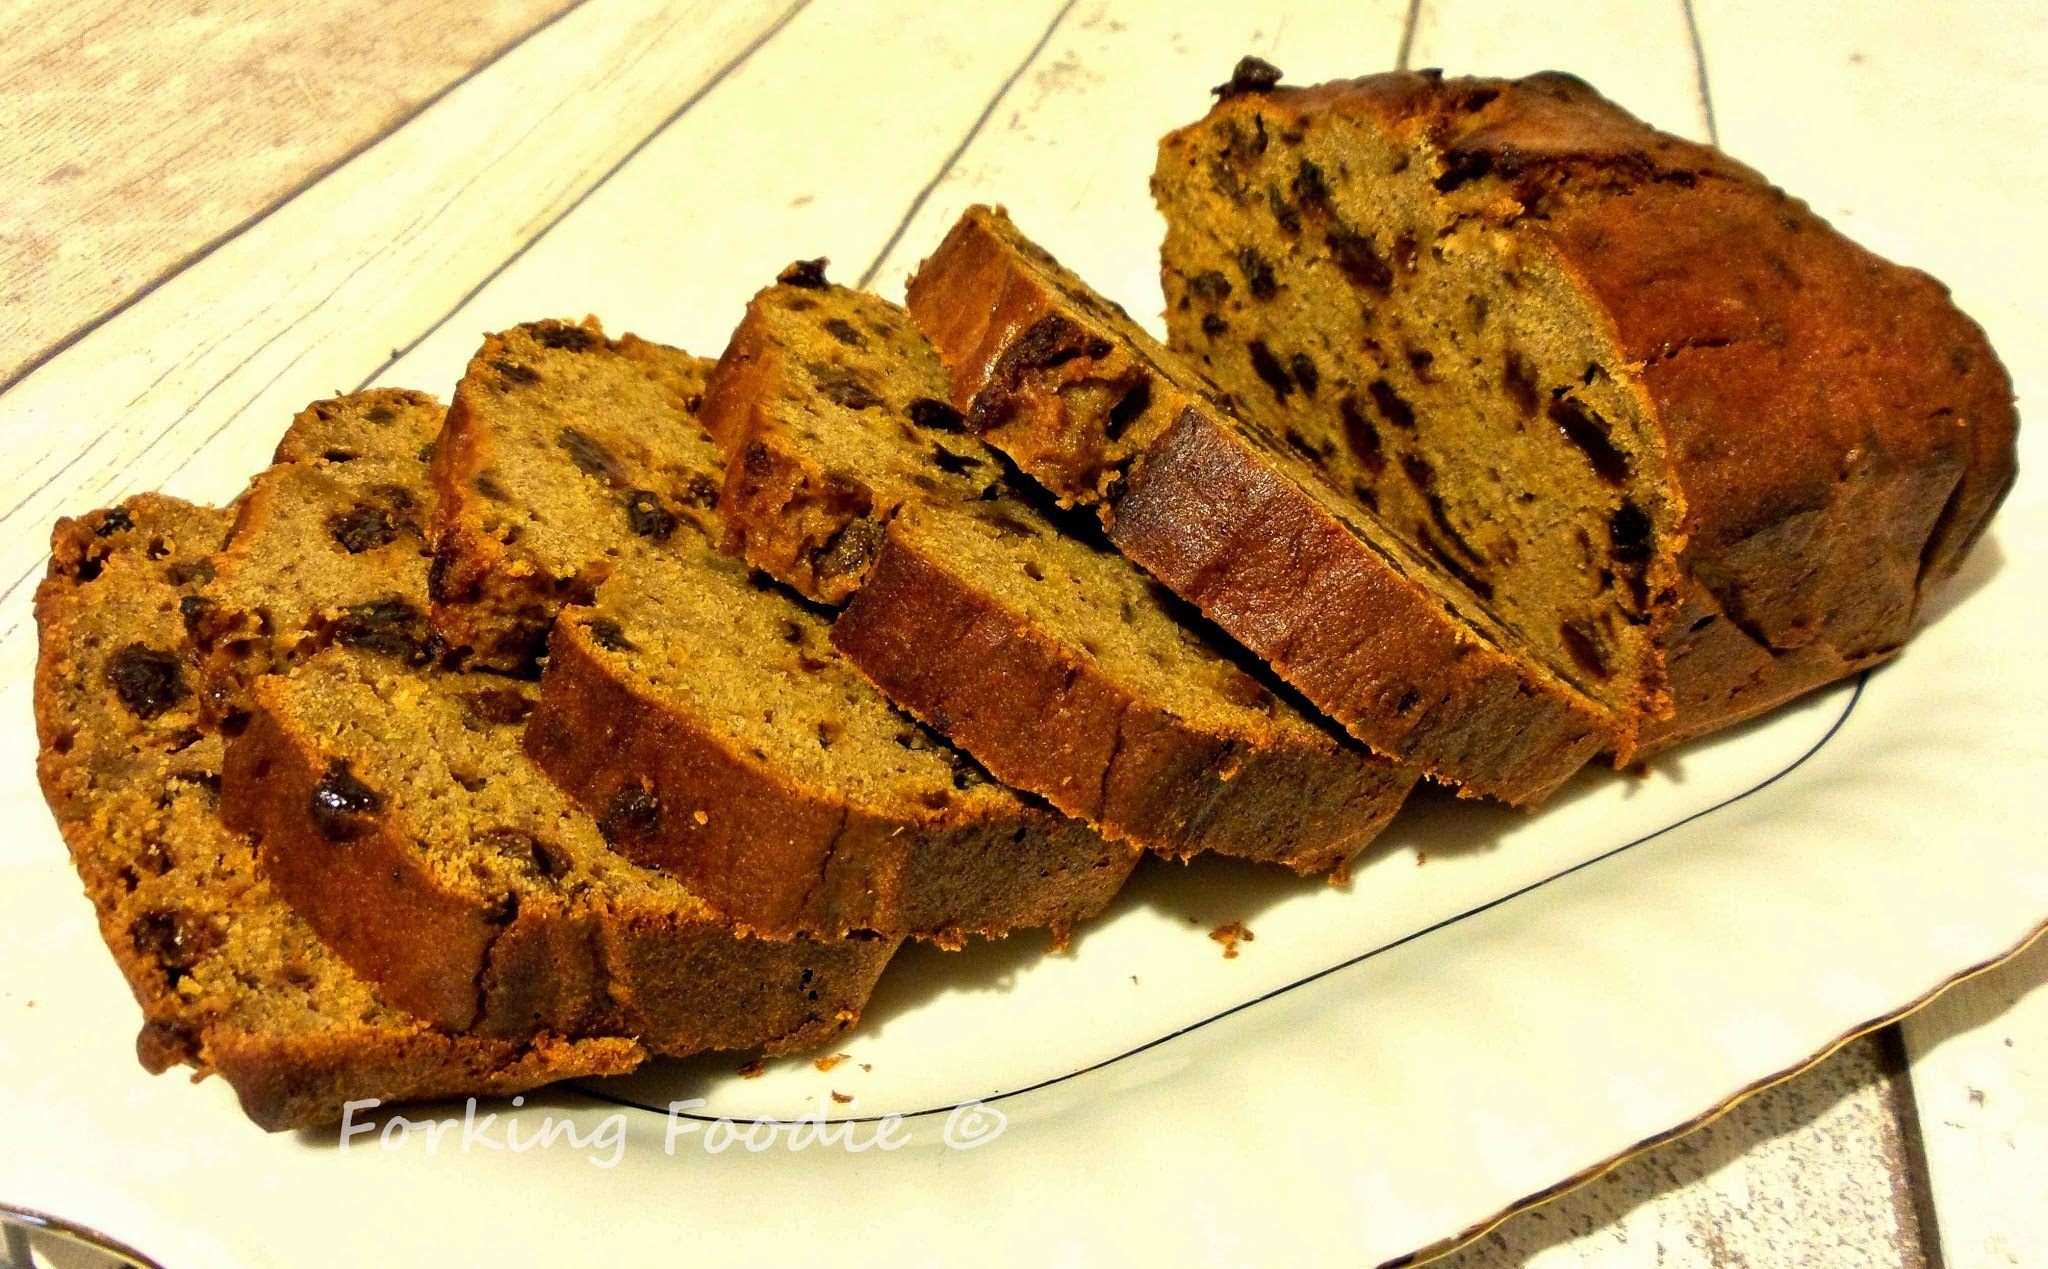 One Minute Banana, Date and Buckwheat Loaf (includes Thermomix instructions)